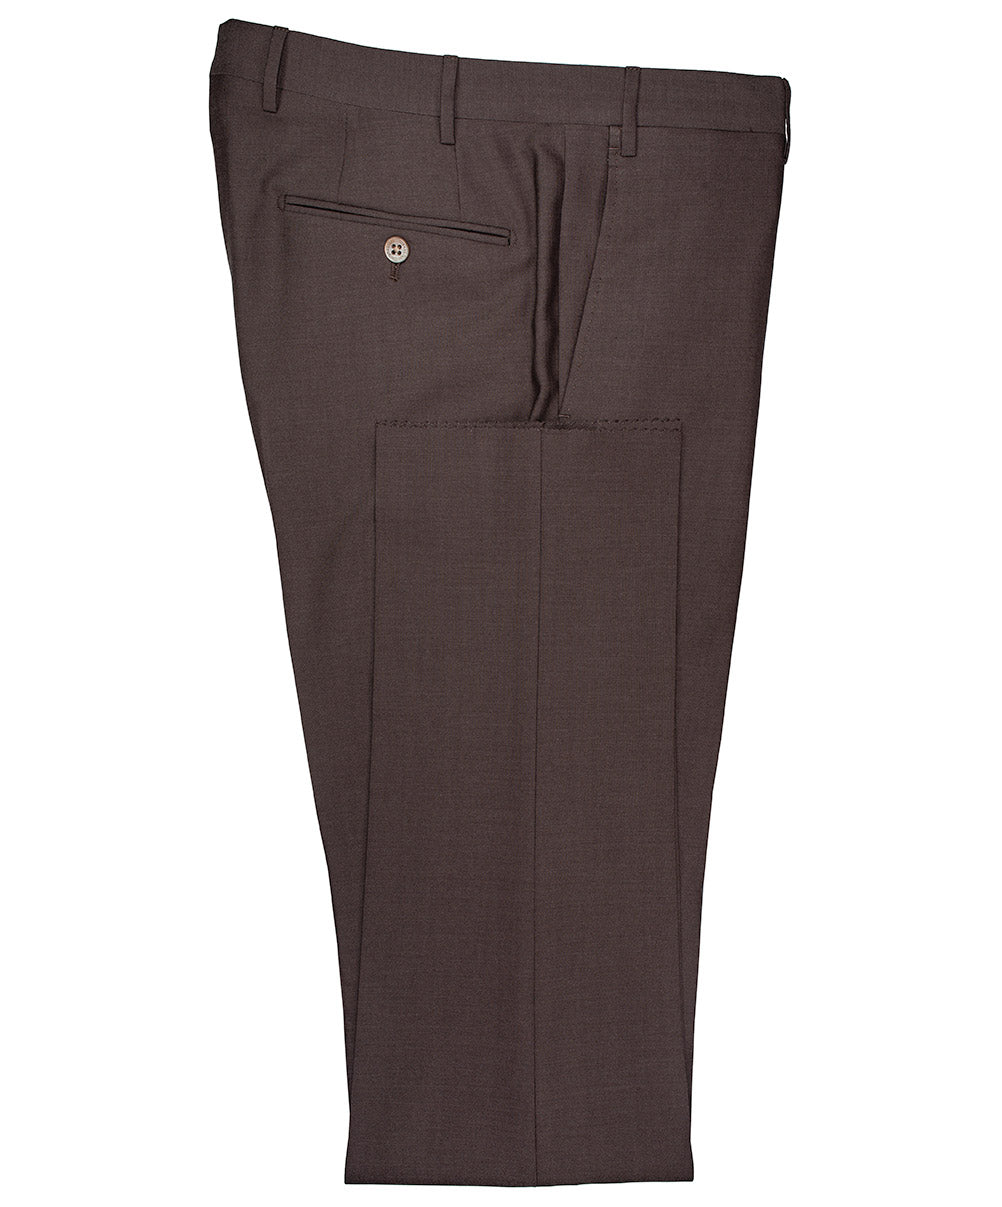 Academy Caramel Dress Pant